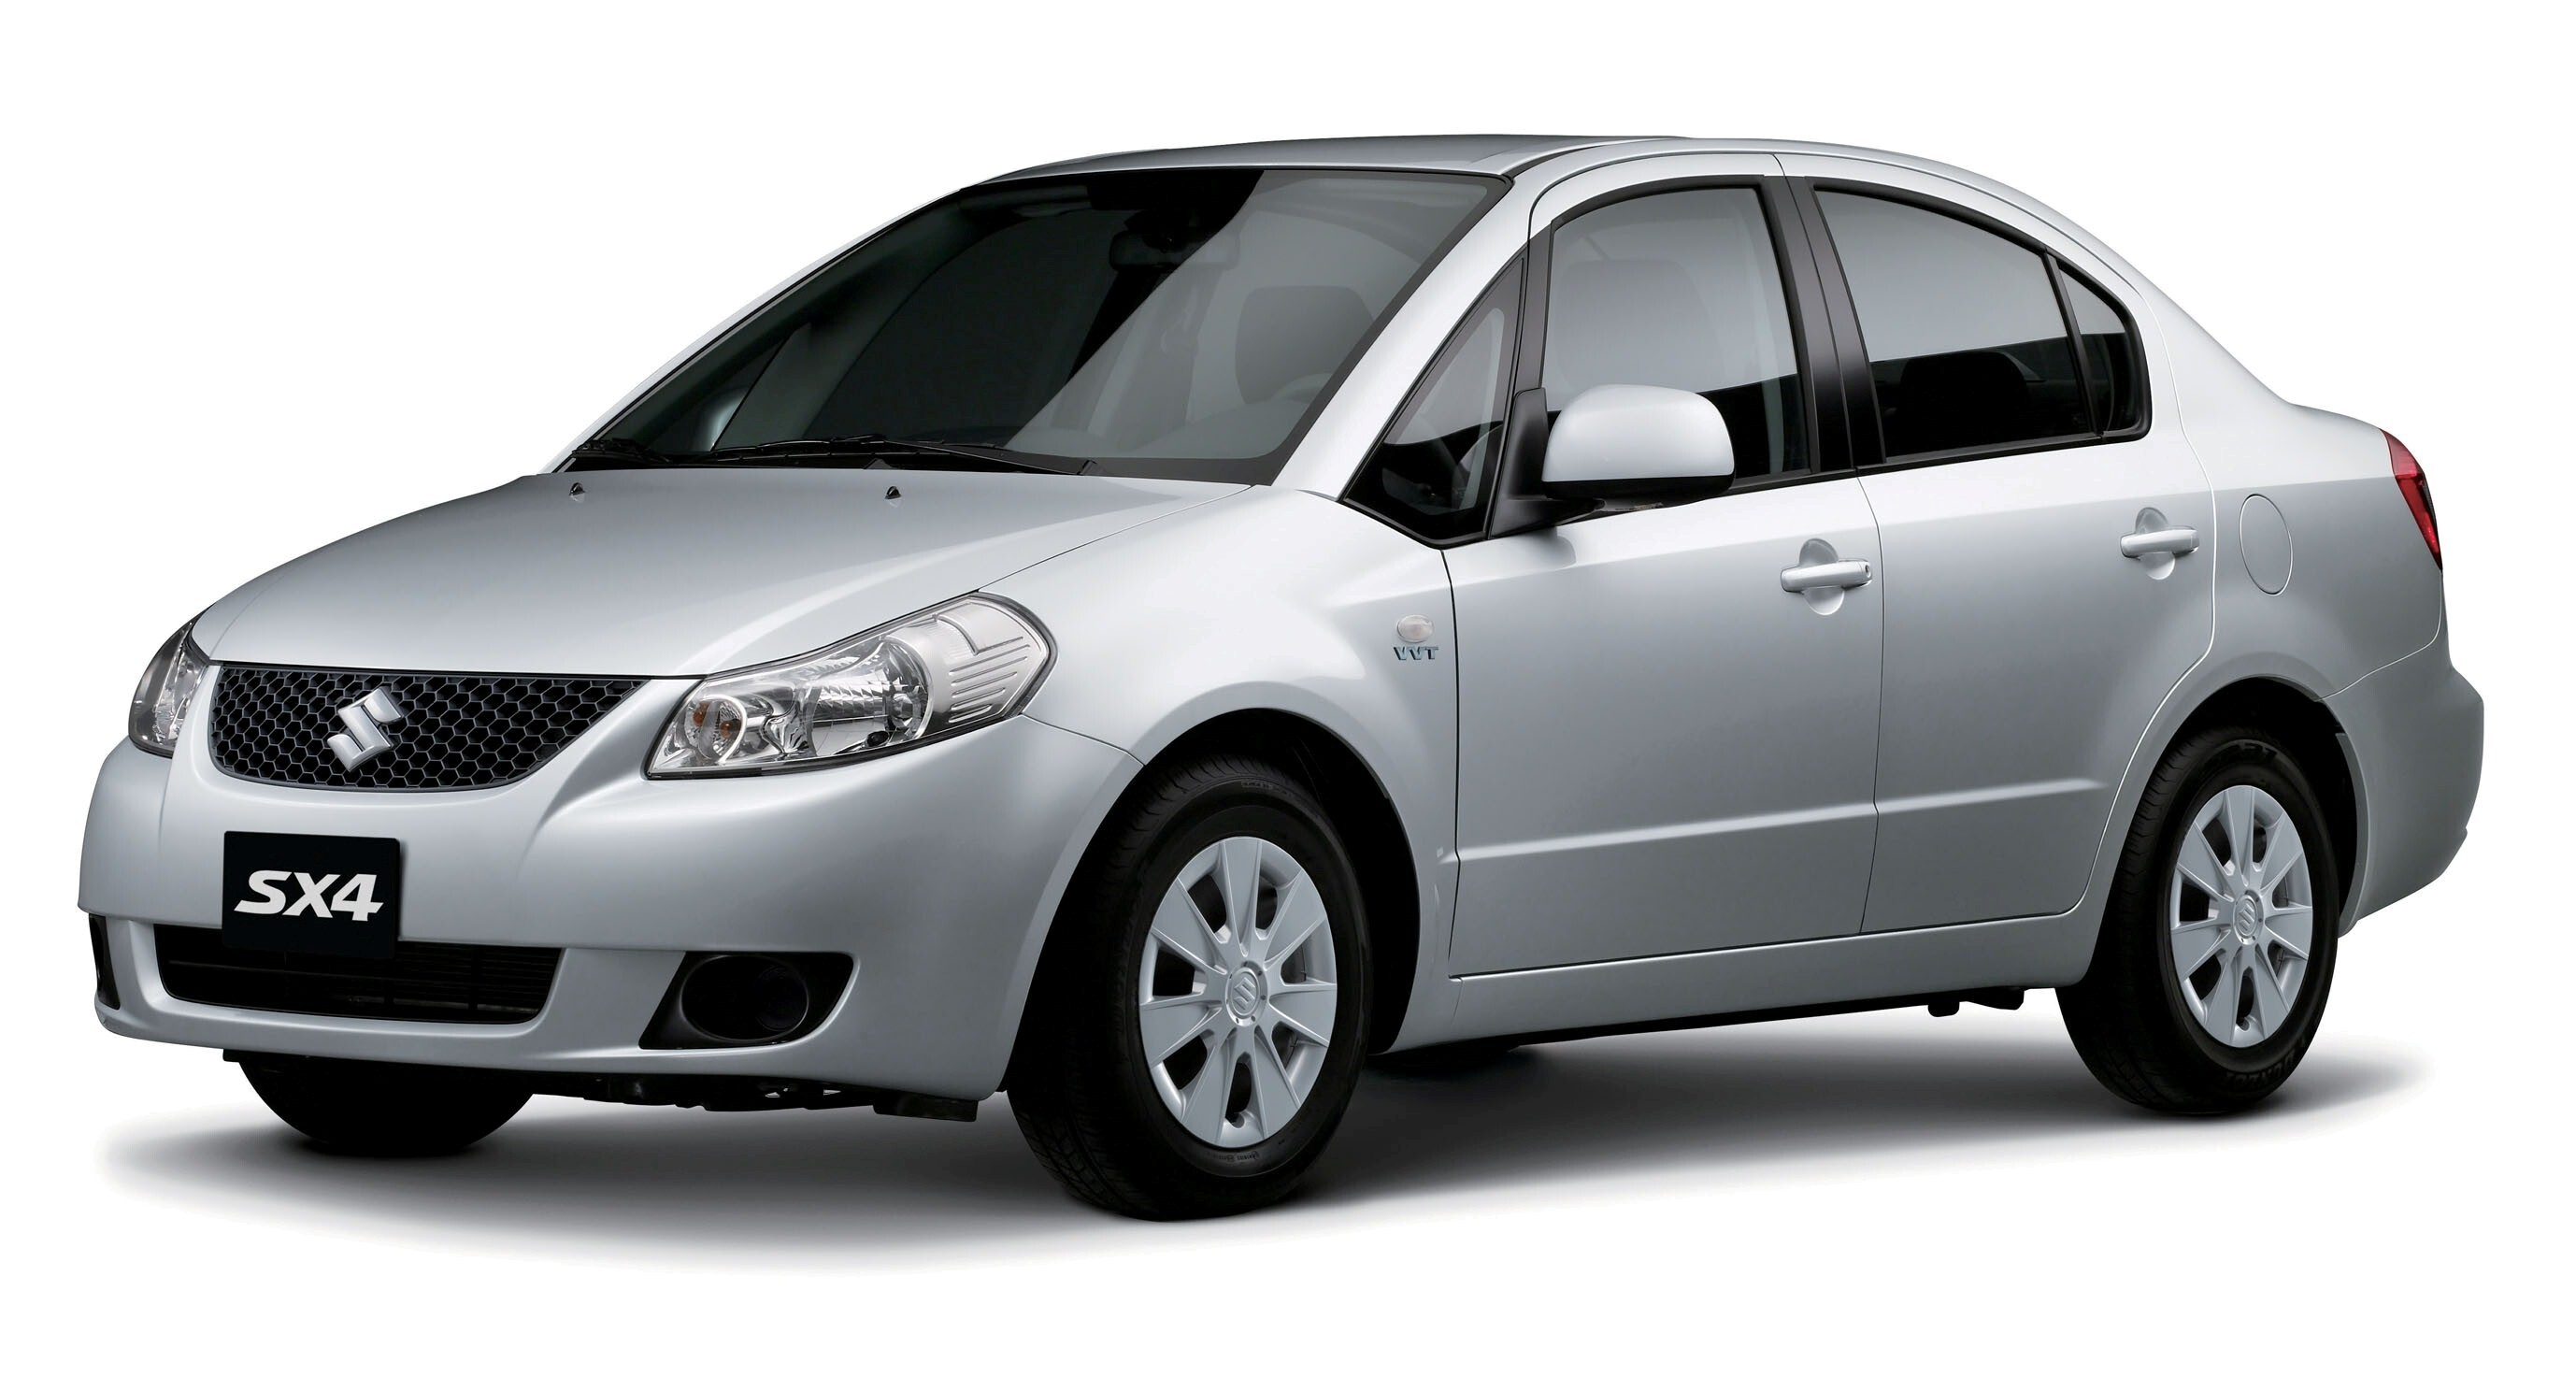 1429 Views 997 Download Silver Maruti Suzuki SX4 Car Wallpaper